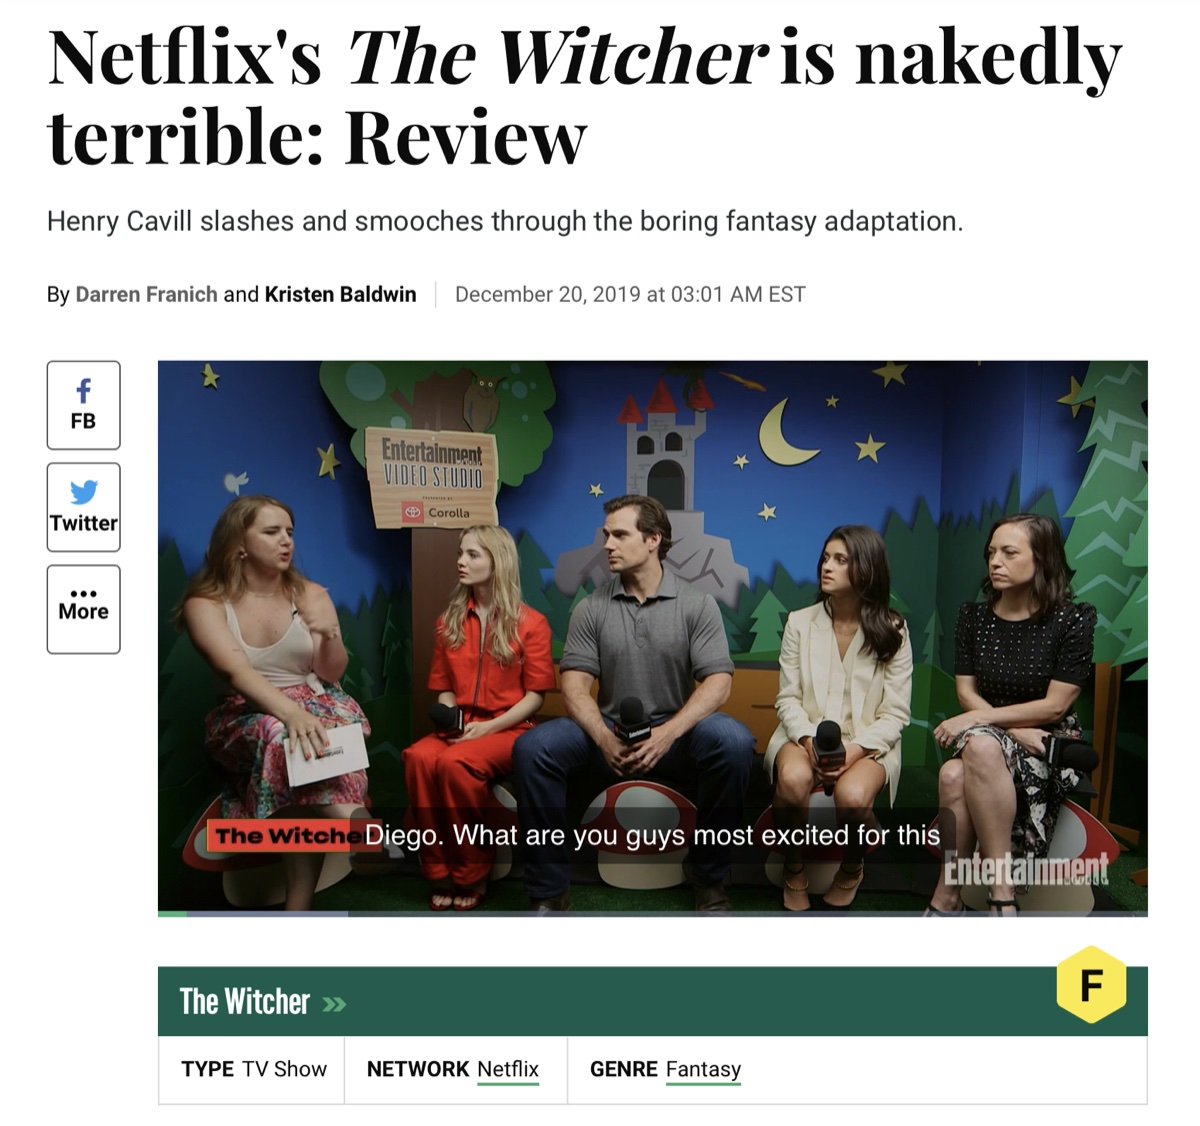 Entertainment Weekly's F rating for Netflix's The Witcher